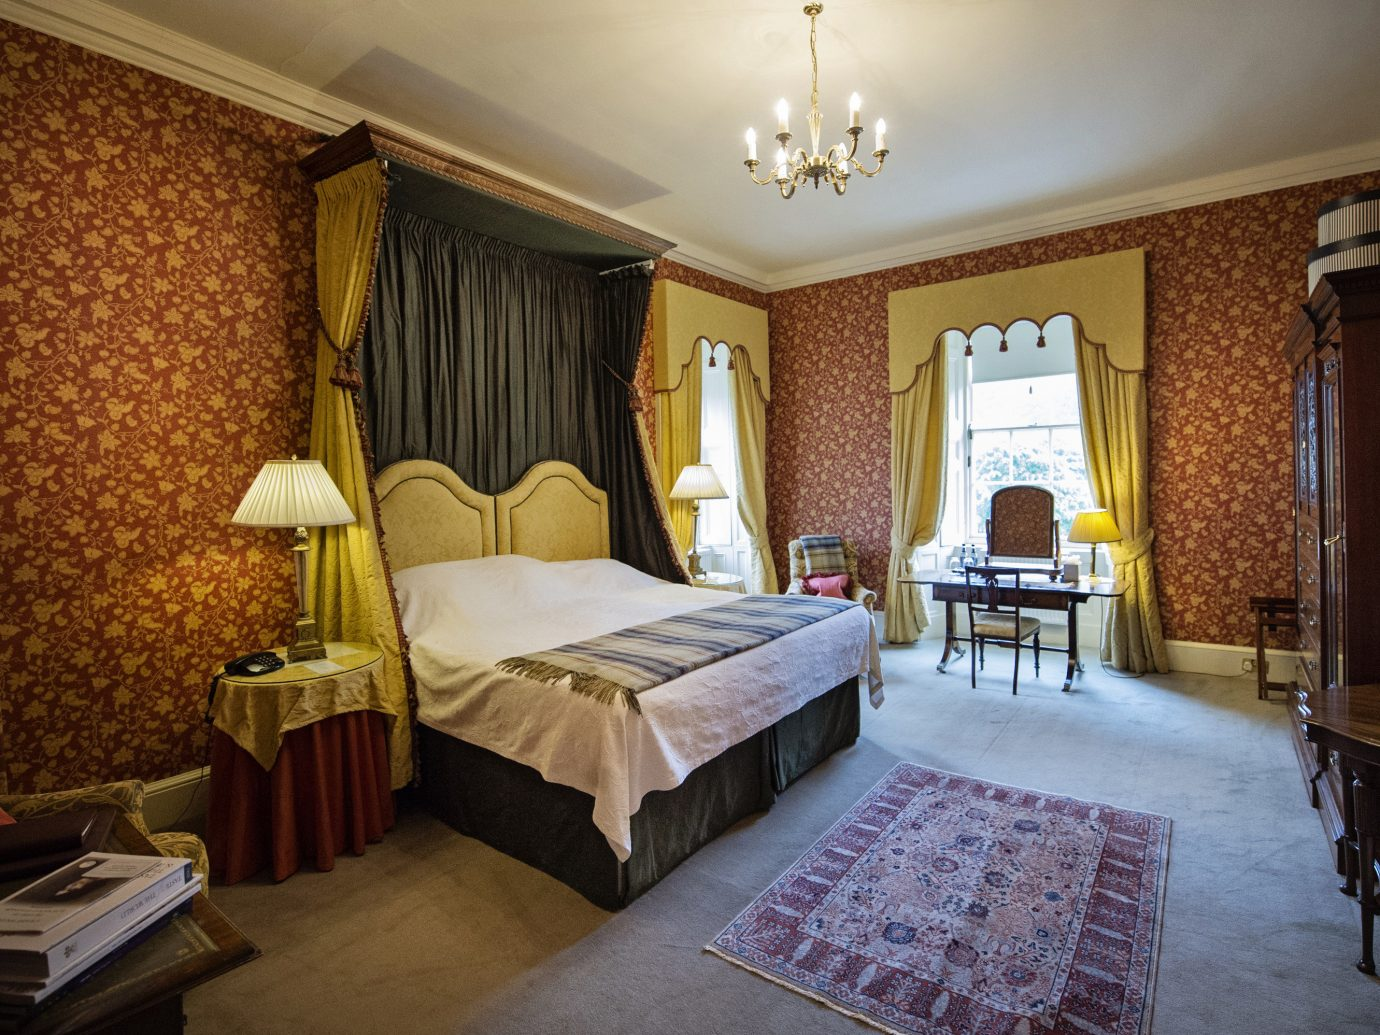 Bedroom at Glenapp Castle